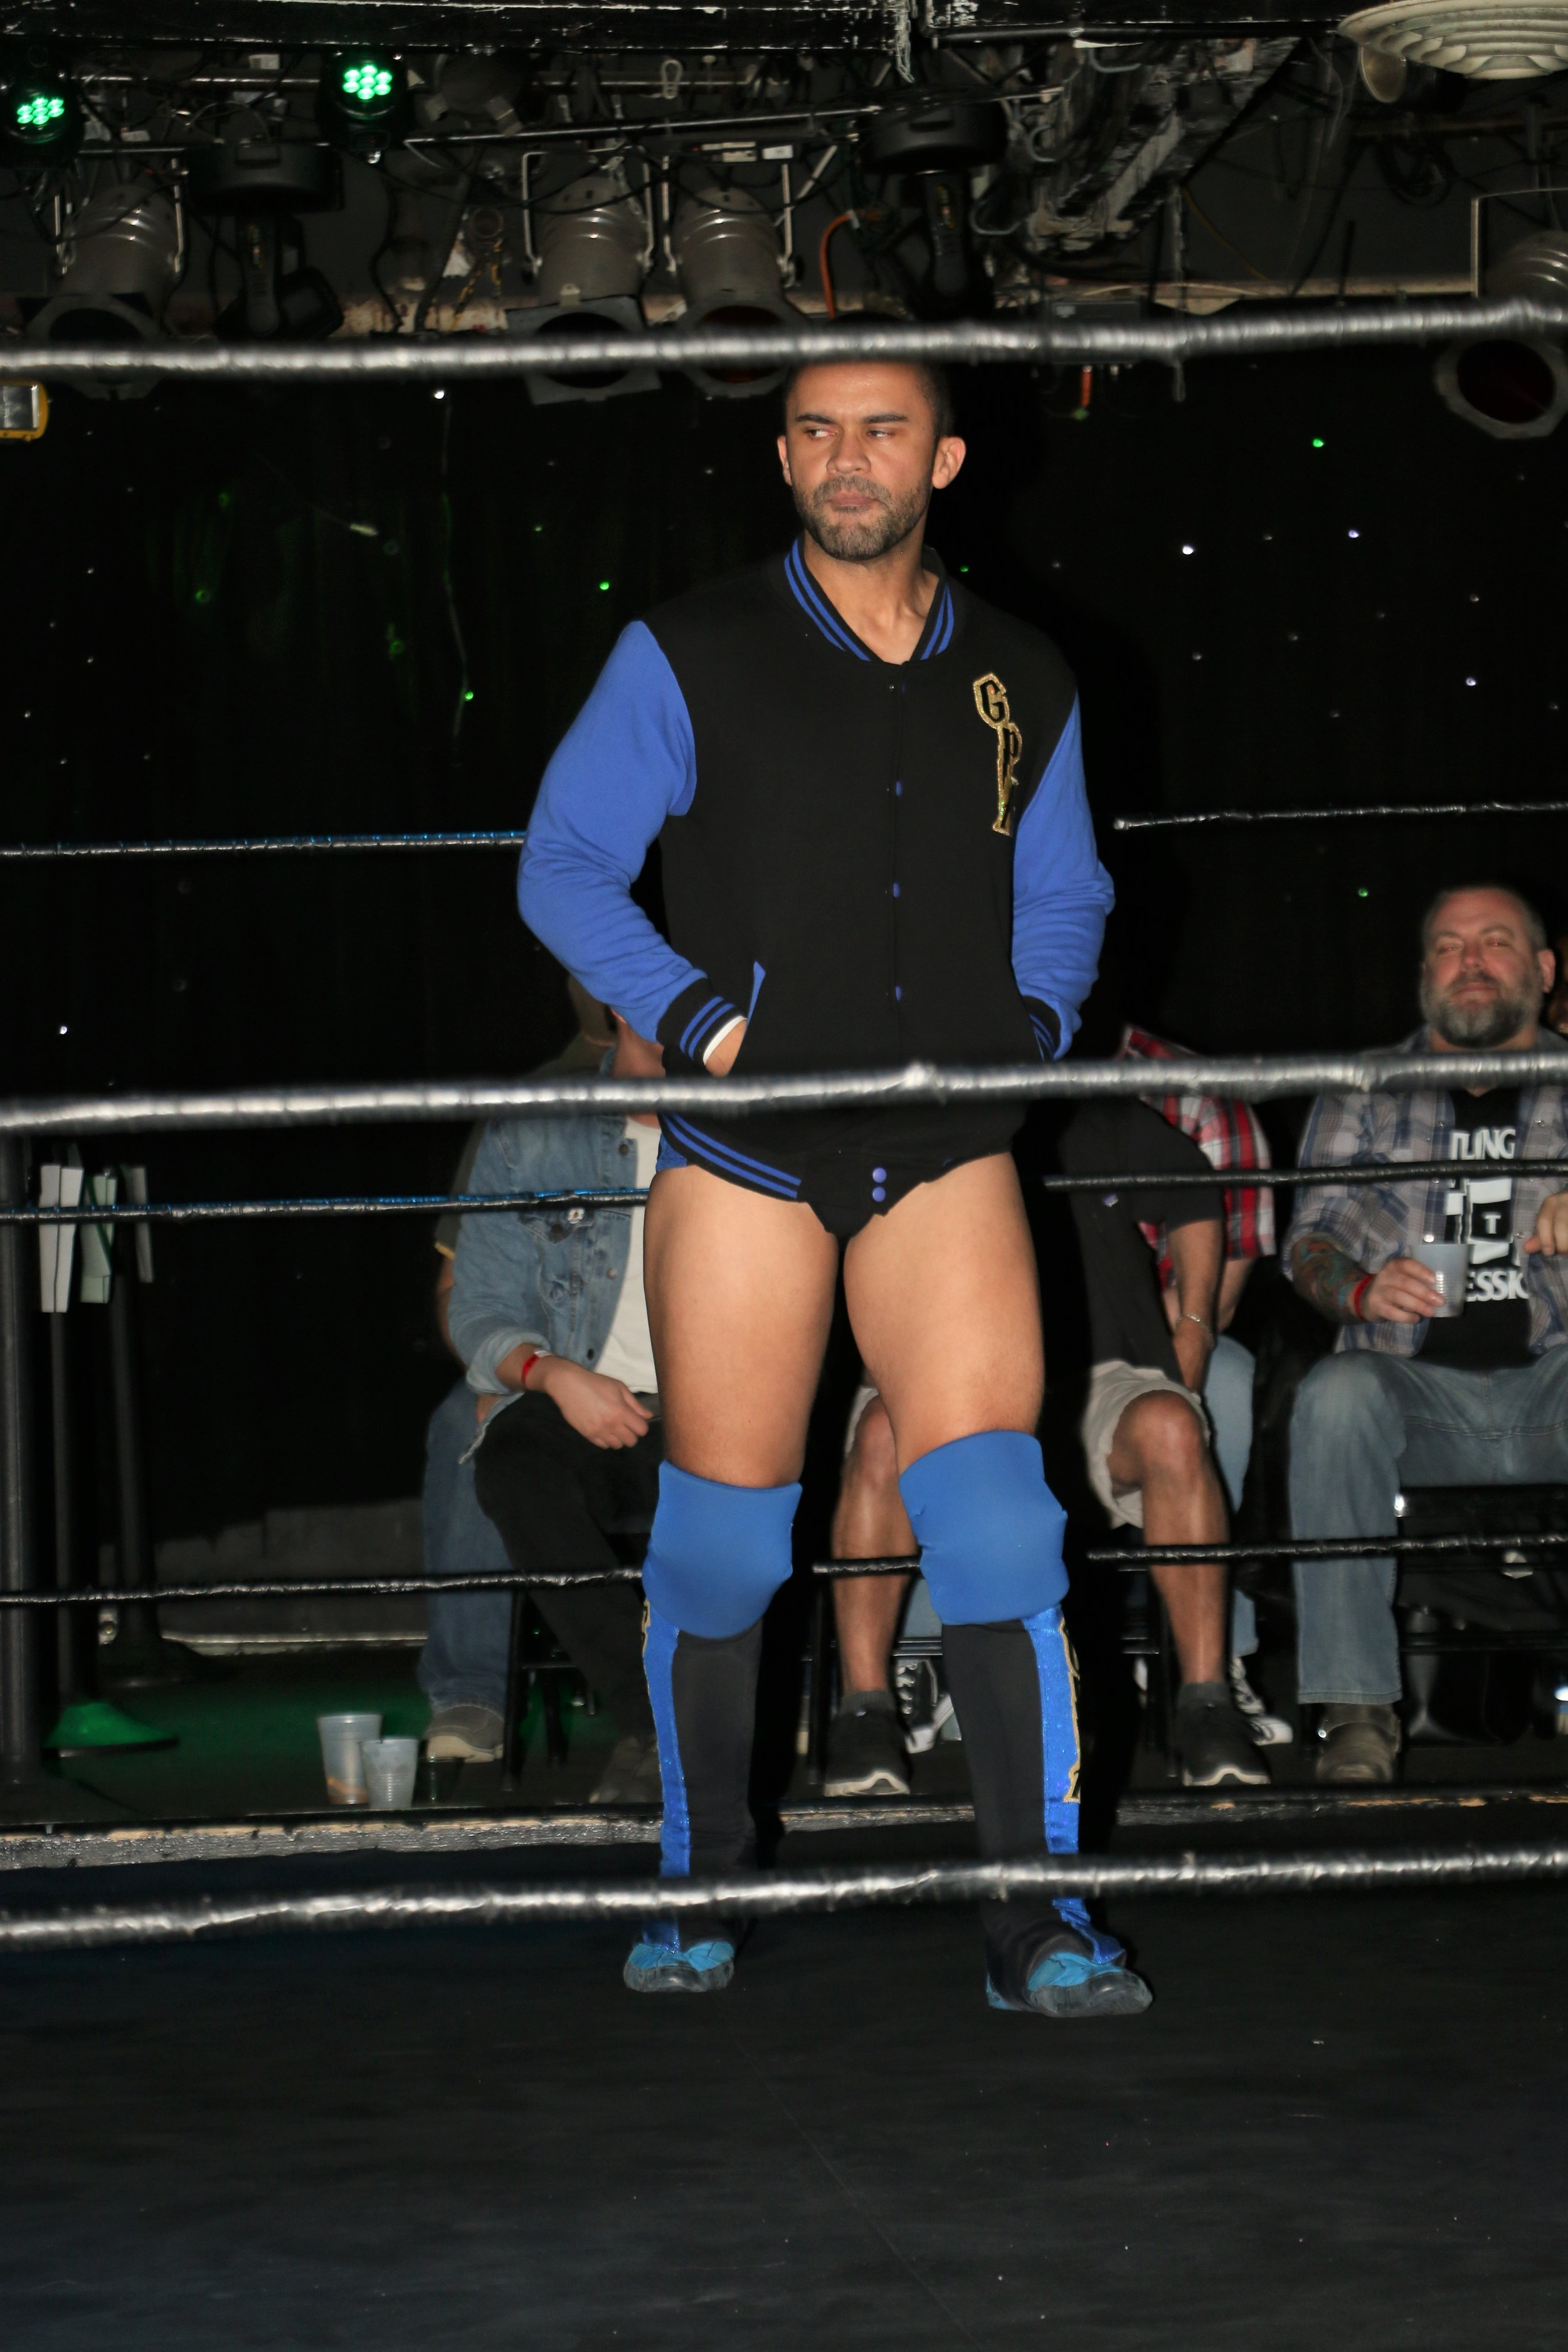 GPA enters the ring before his tag team match.